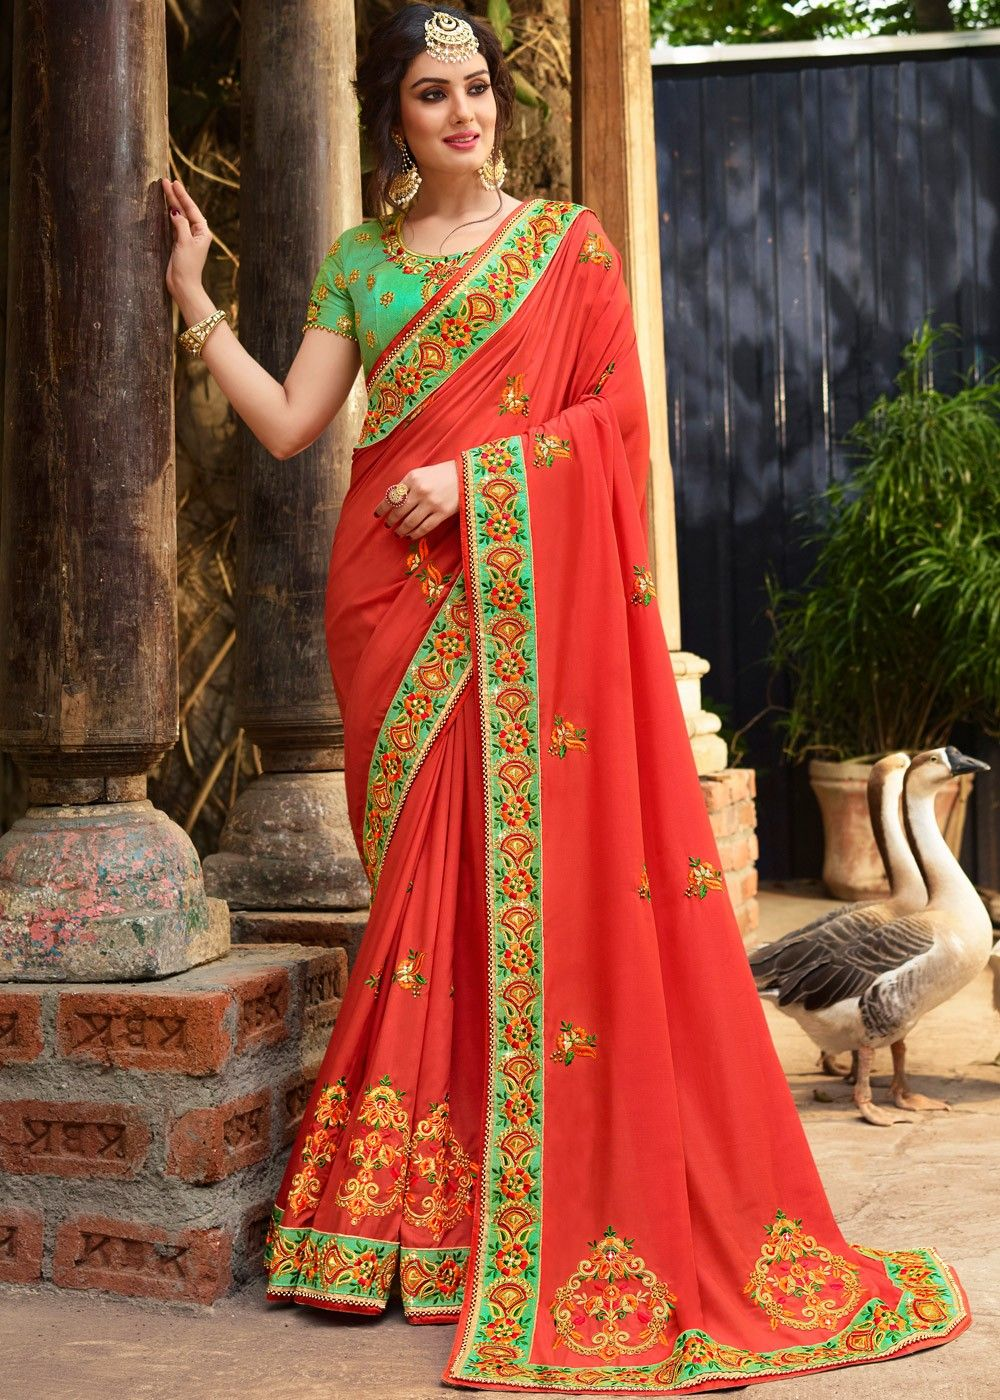 f2753747f7 Light #red crape #saree with border work and motifs in #zari work, #resham  #embroidery, stones & beaded details.